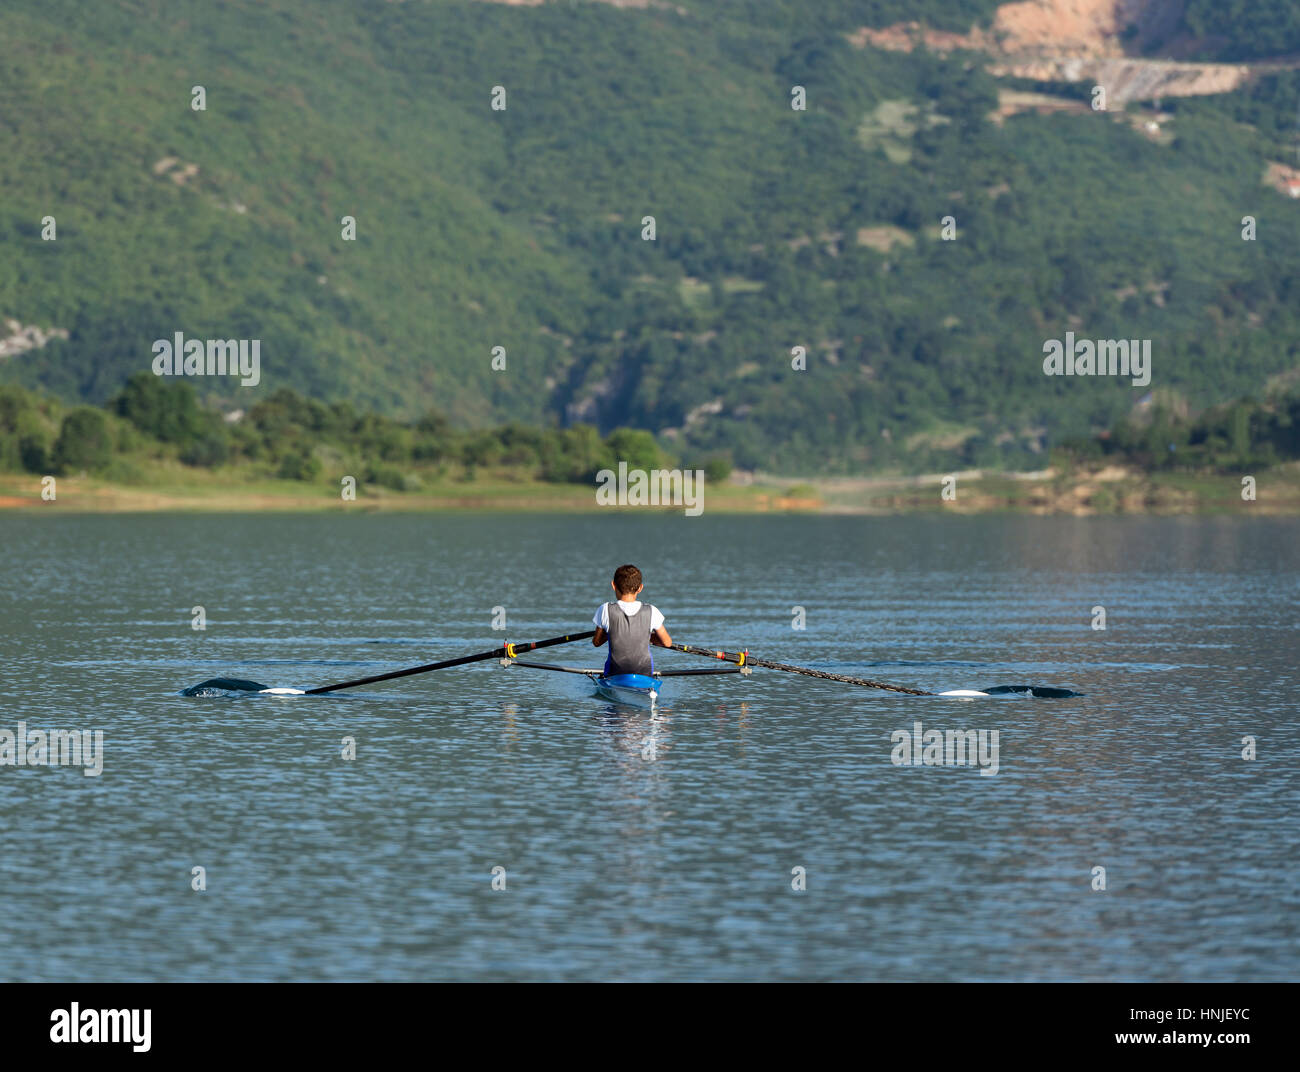 Child in the course of rowing on single - Stock Image